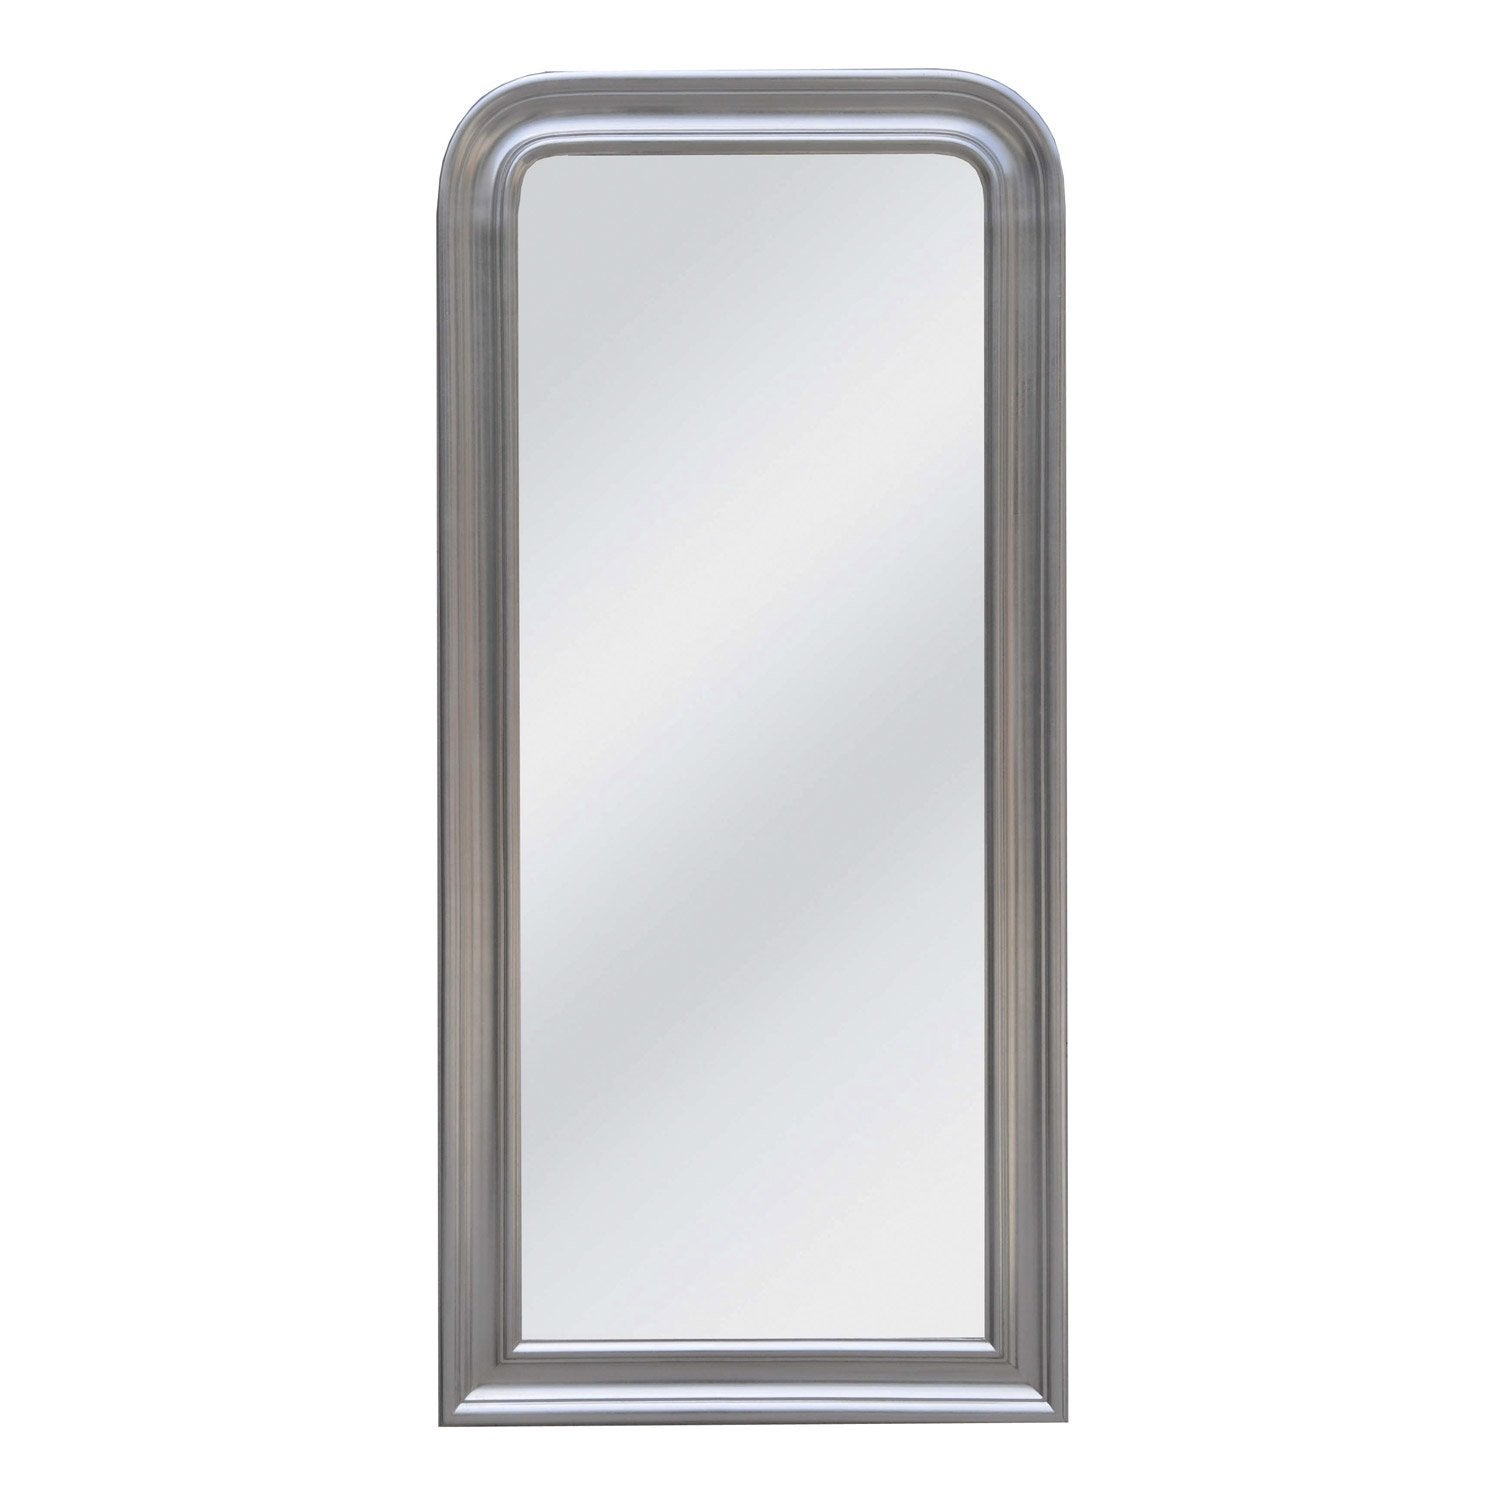 Miroir daventry rectangle argent 70x150 cm leroy merlin for Miroir 50 x 70 leroy merlin